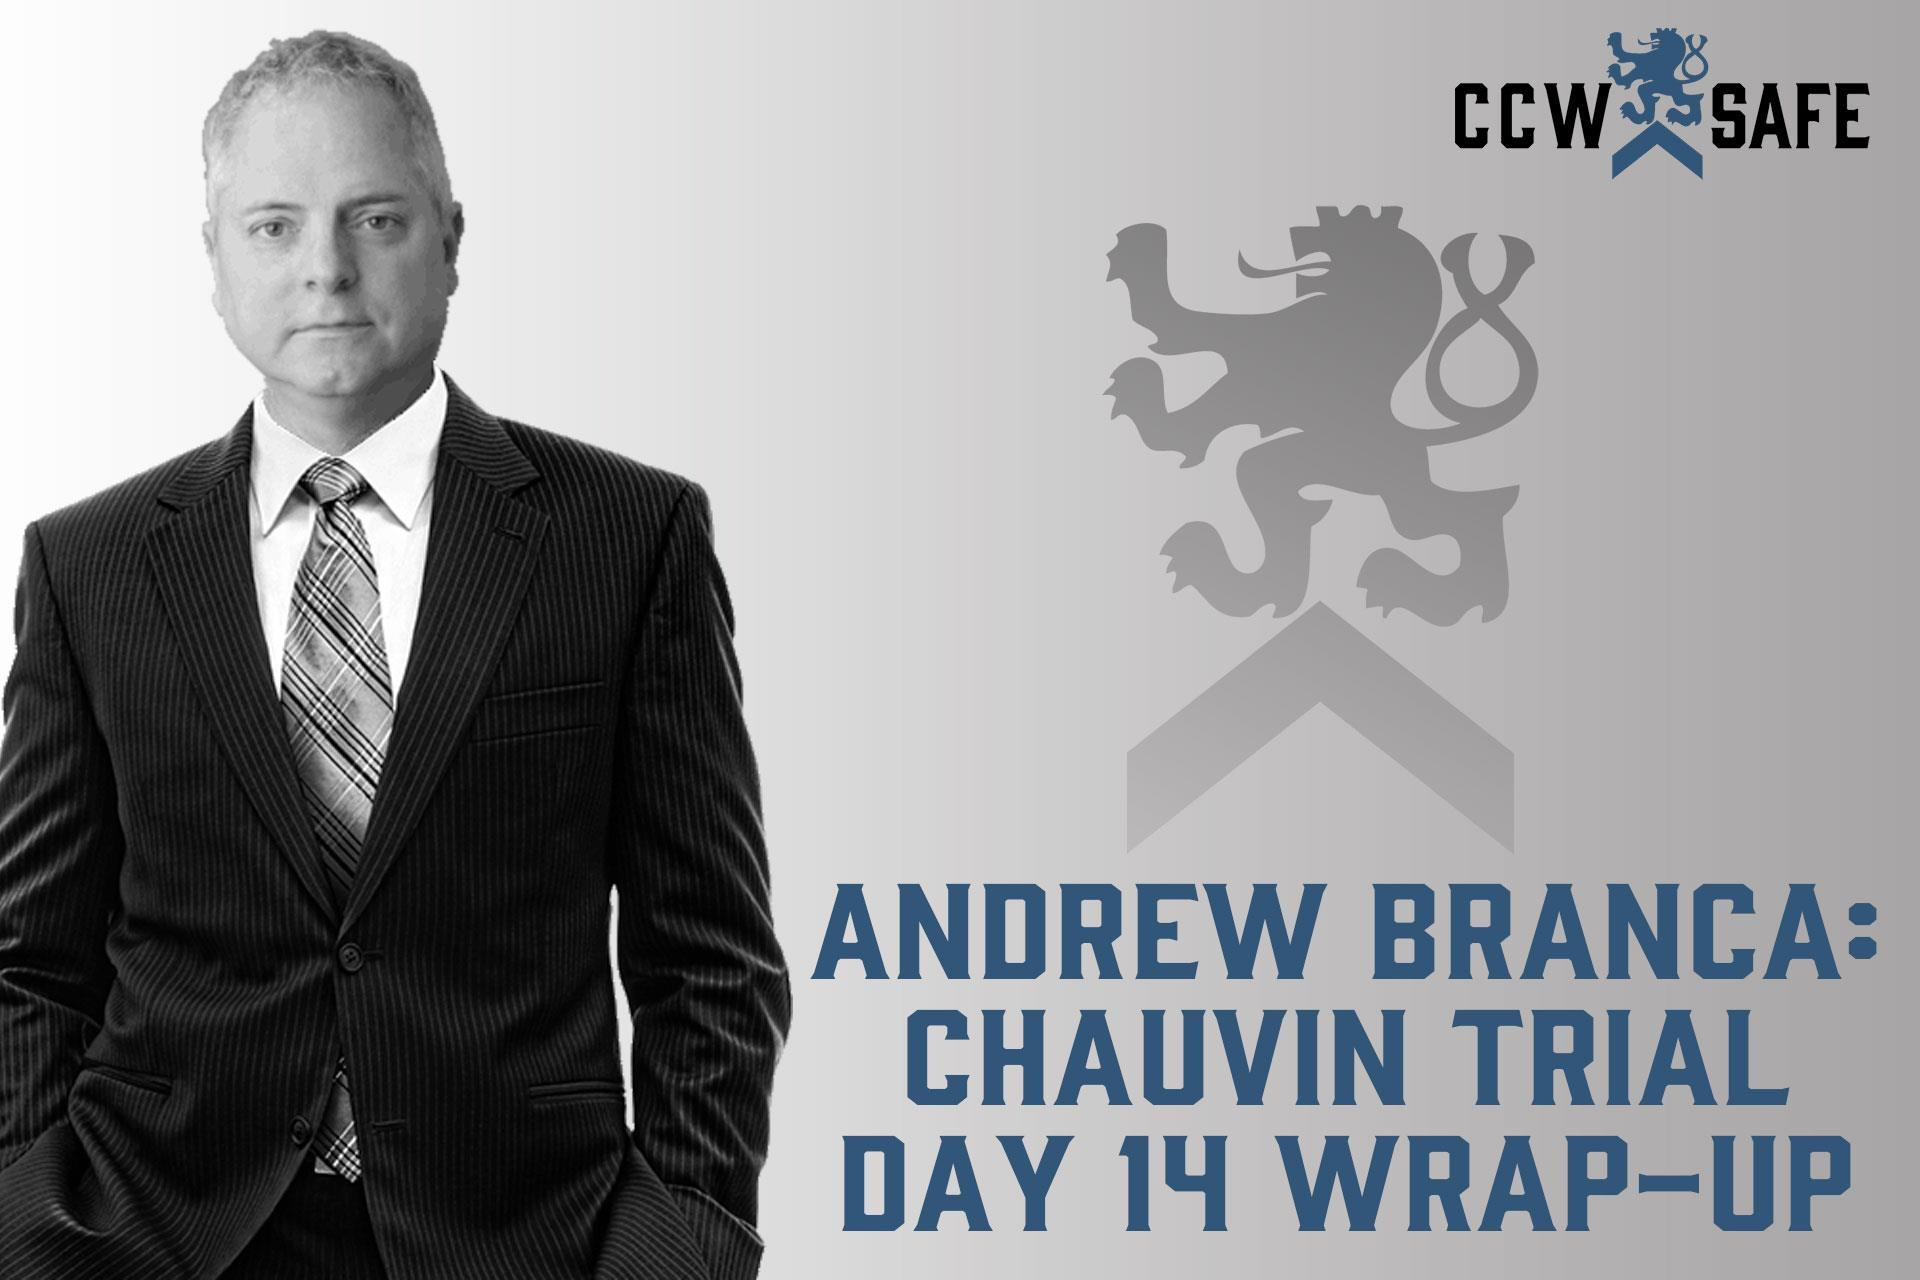 Andrew Branca: Chauvin Trial Day 14 Wrap-Up